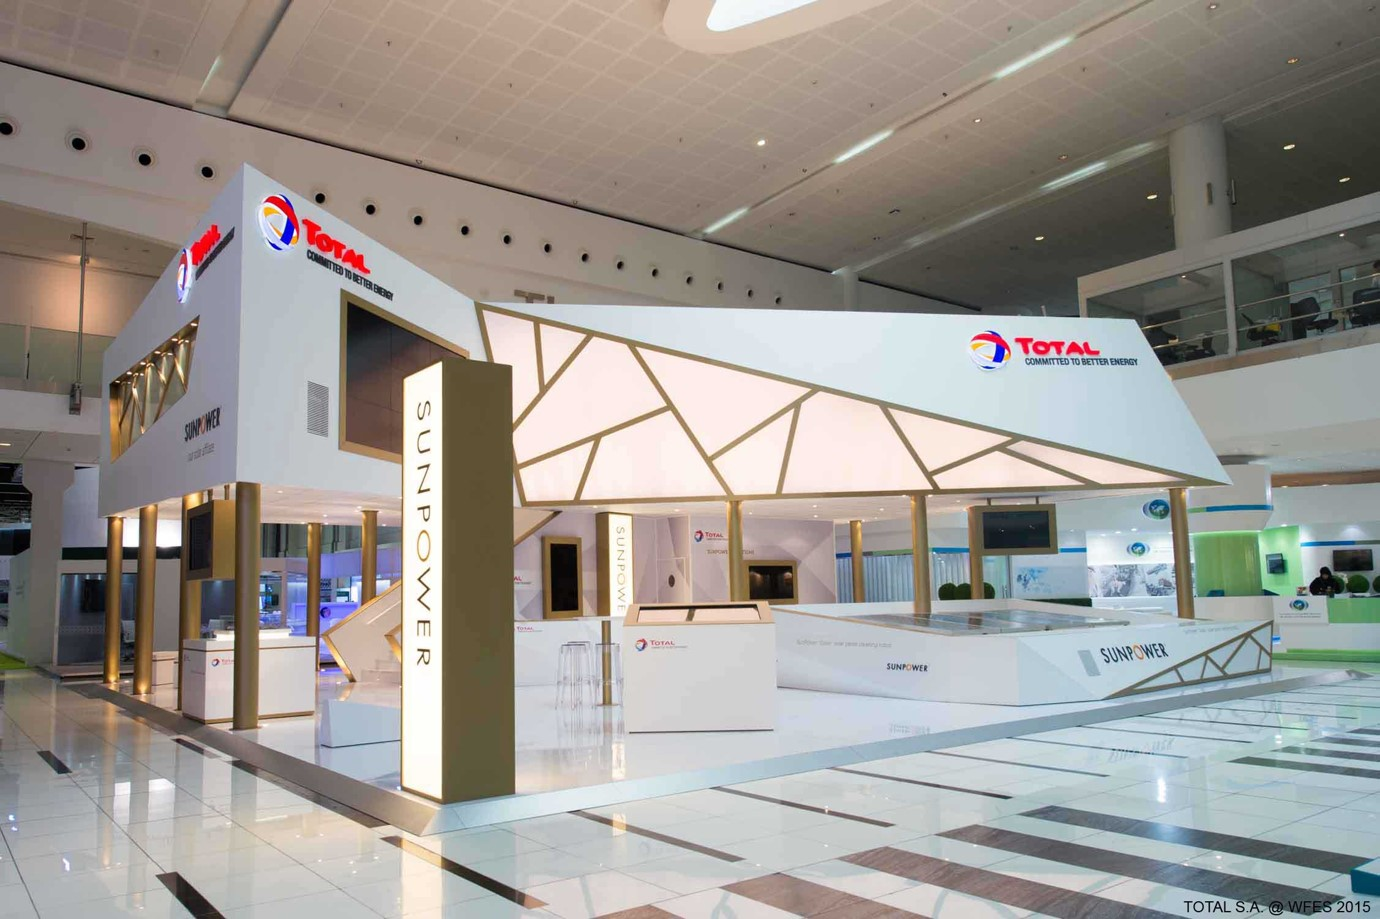 Stand - Total WFES 2015 / Picture: Electra